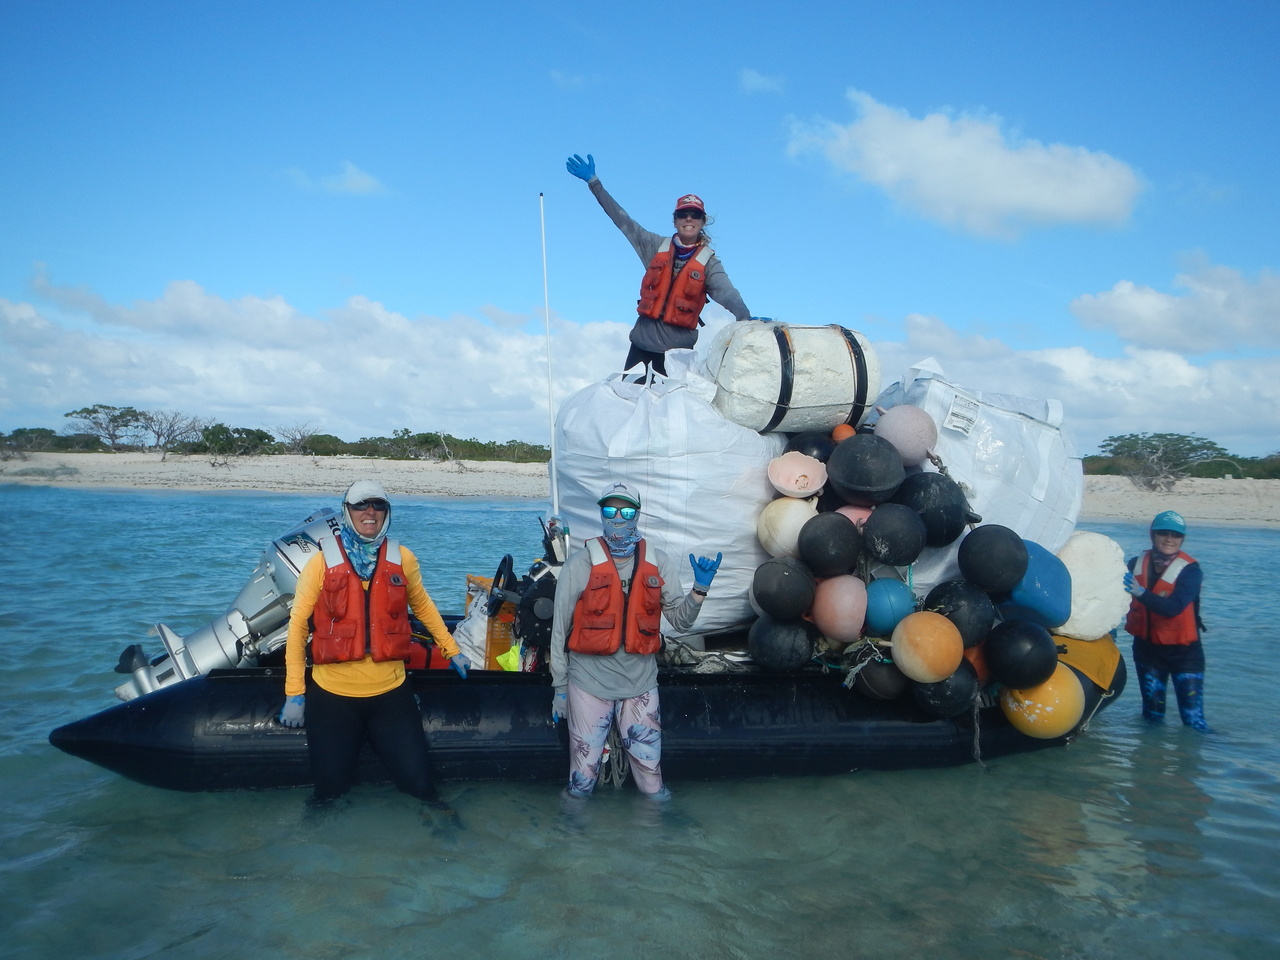 How much debris can a small boat take? Scientists tested their packing and organizing skills to pile a lot of debris on the small boat, and they have done a great job.